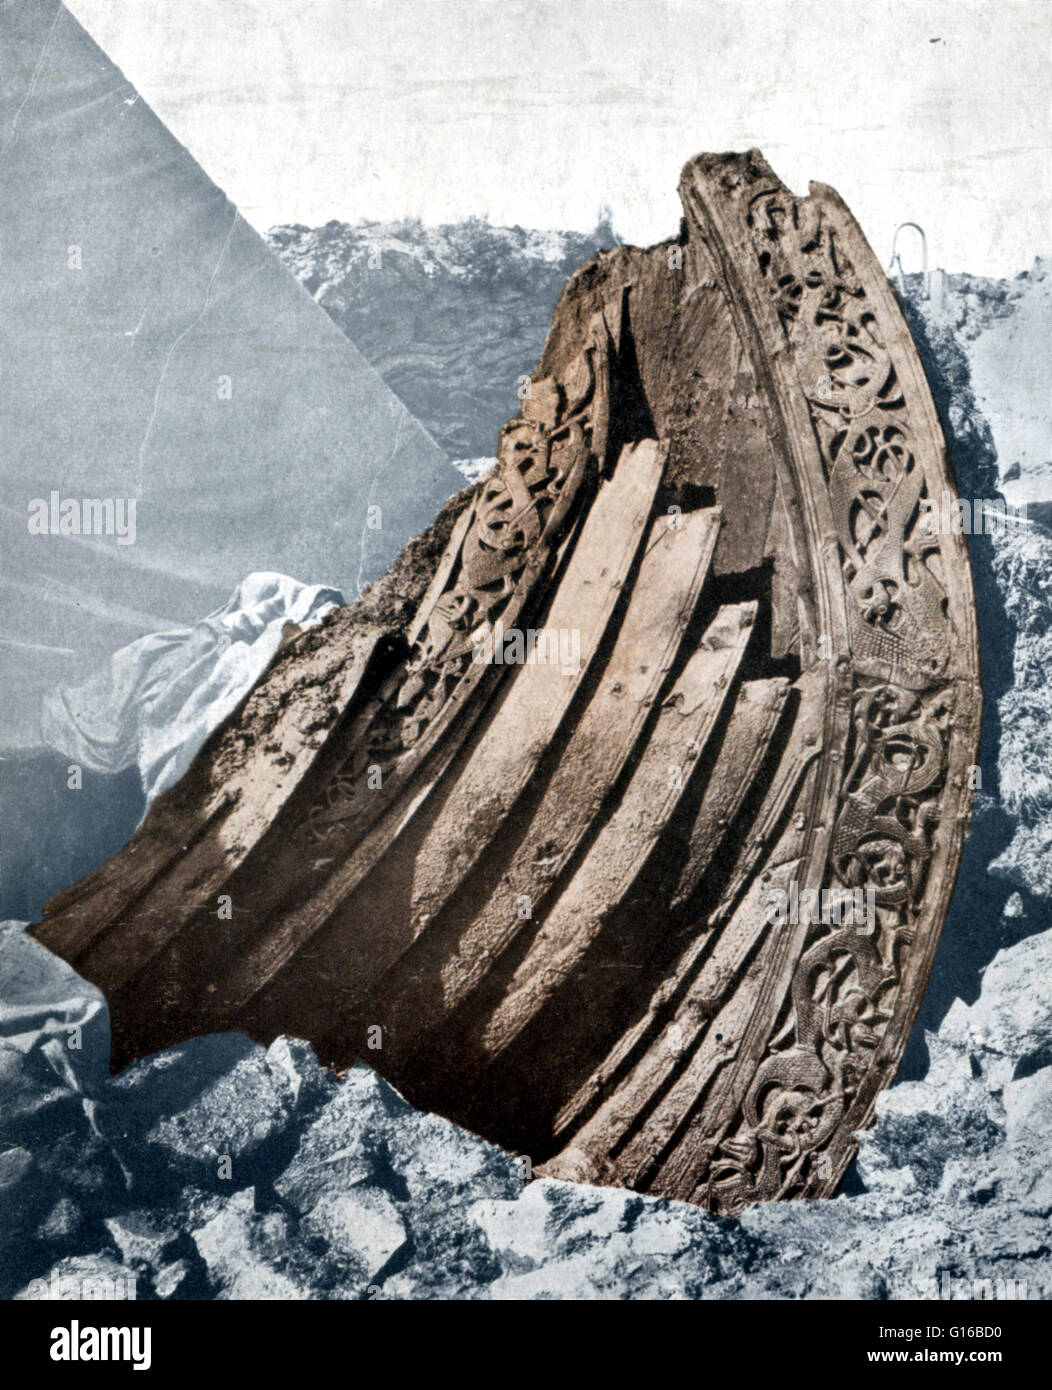 The Oseberg ship is a well-preserved Viking ship discovered in a large burial mound at the Oseberg farm in Norway. - Stock Image